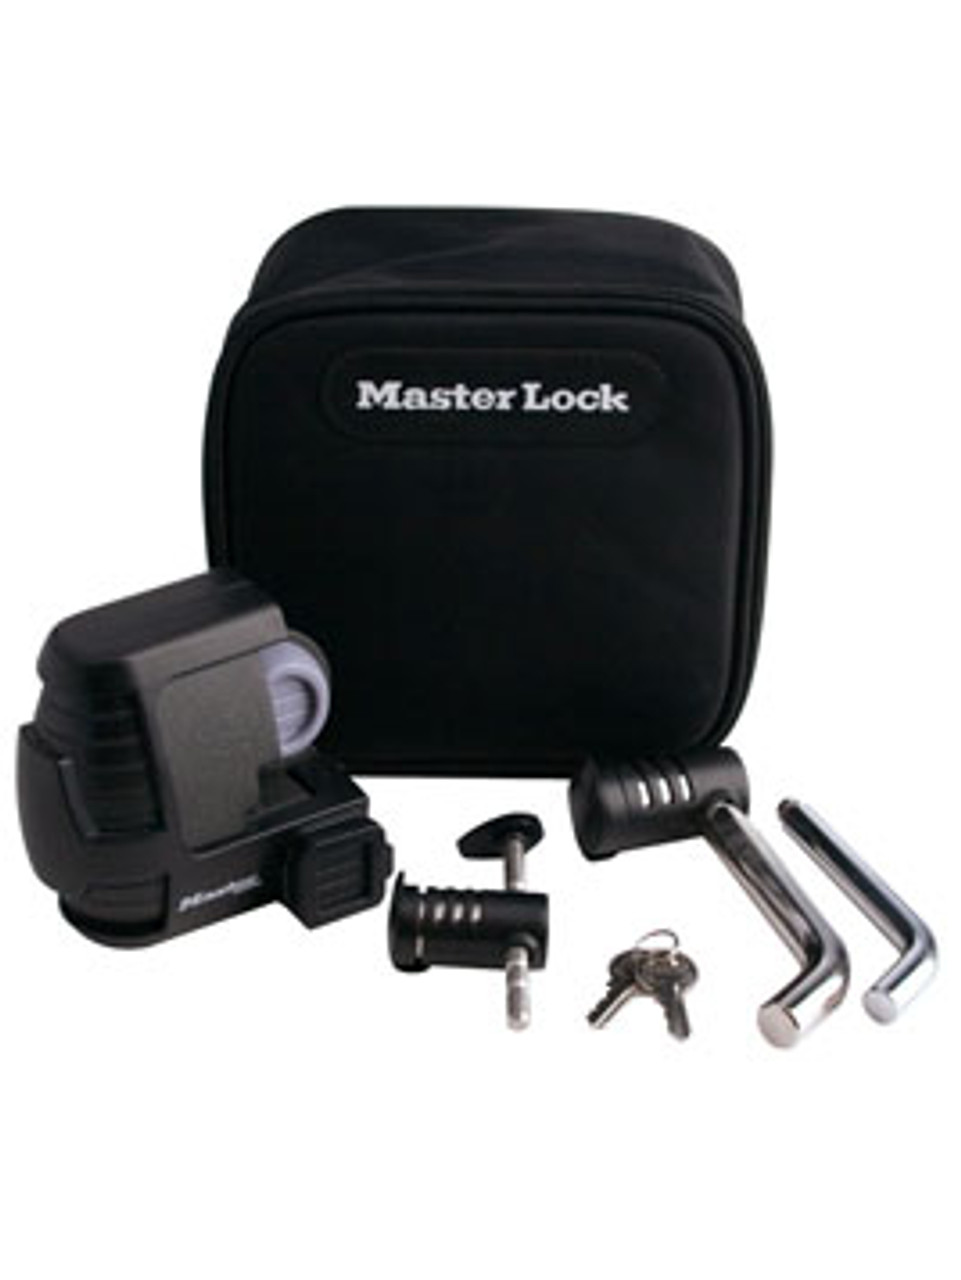 RCL3 --- Master Lock Universal Trailer Coupler and Hitch Lock Keyed Alike Kit